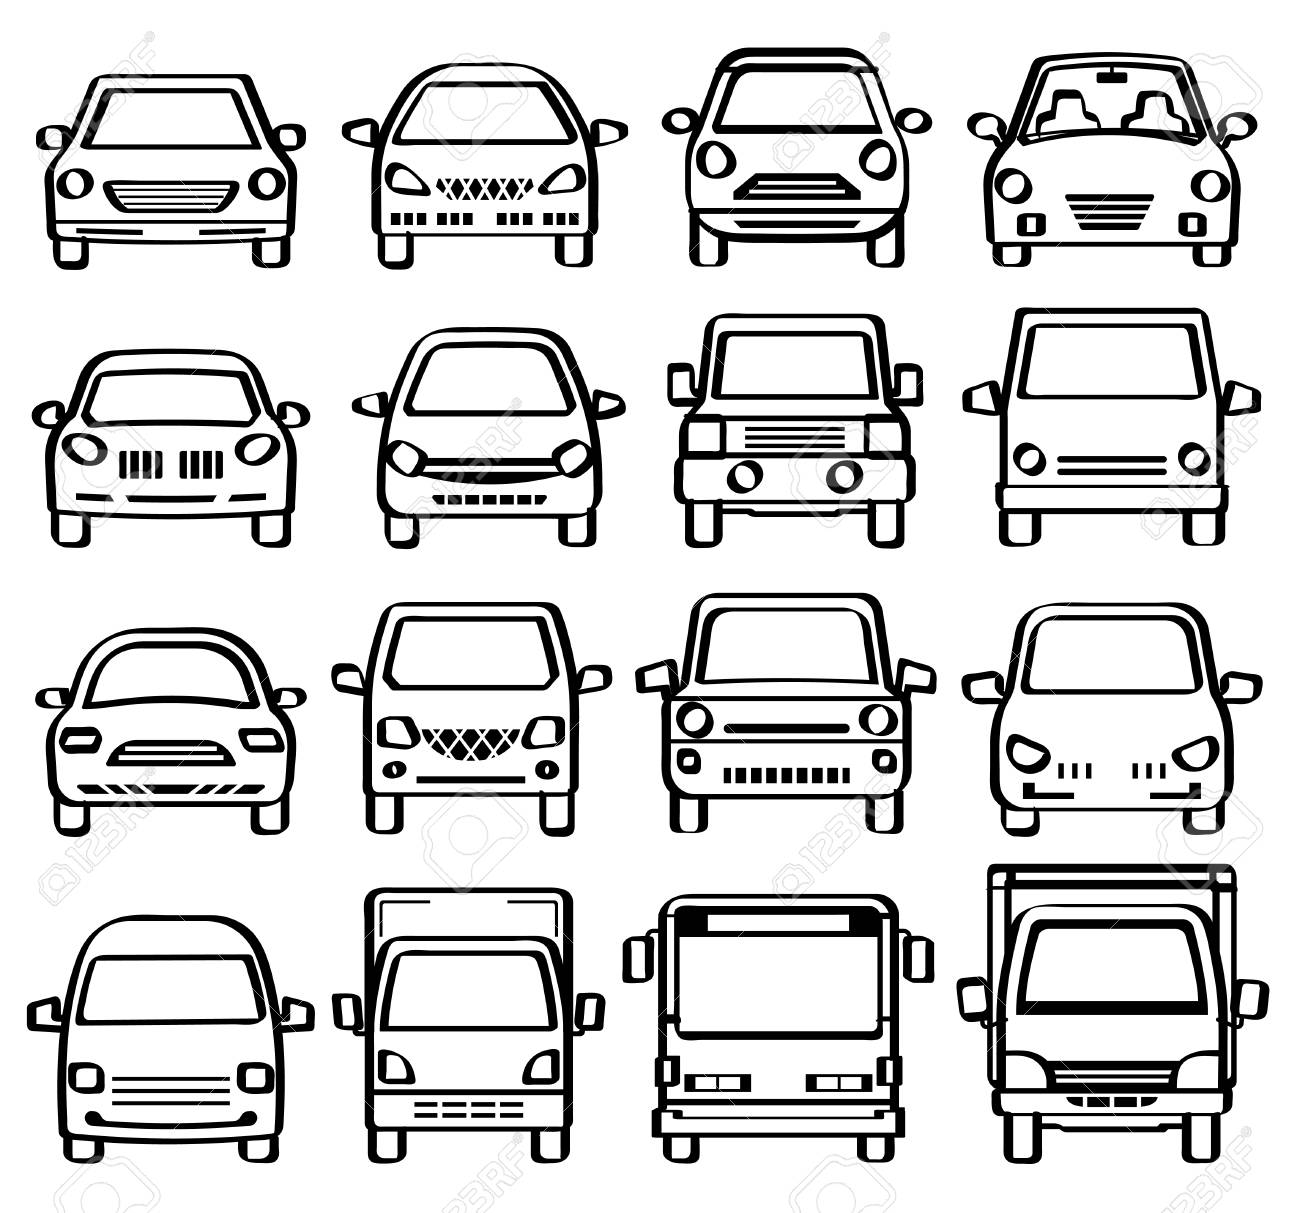 A Front View Of Cars-line Drawing Like Pen Sketch- Royalty Free ...